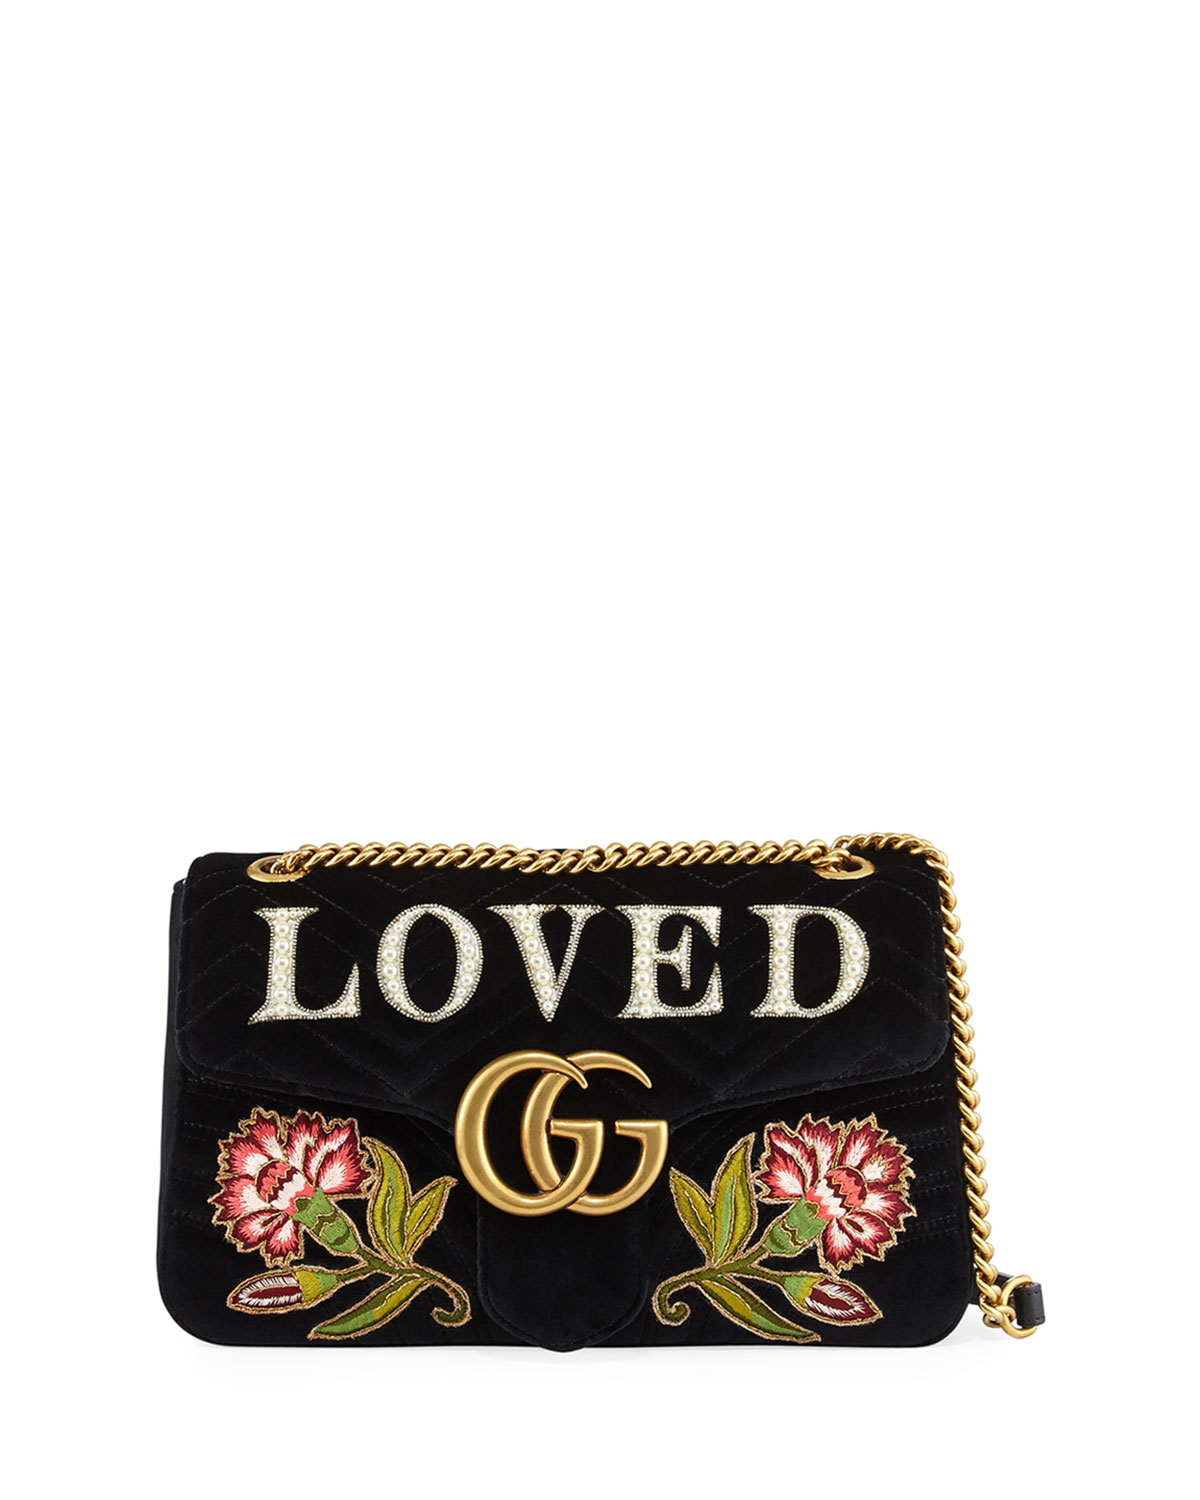 0d0d8c17877f72 Gucci GG Marmont Medium Embroidered Velvet Shoulder Bag, Black ...